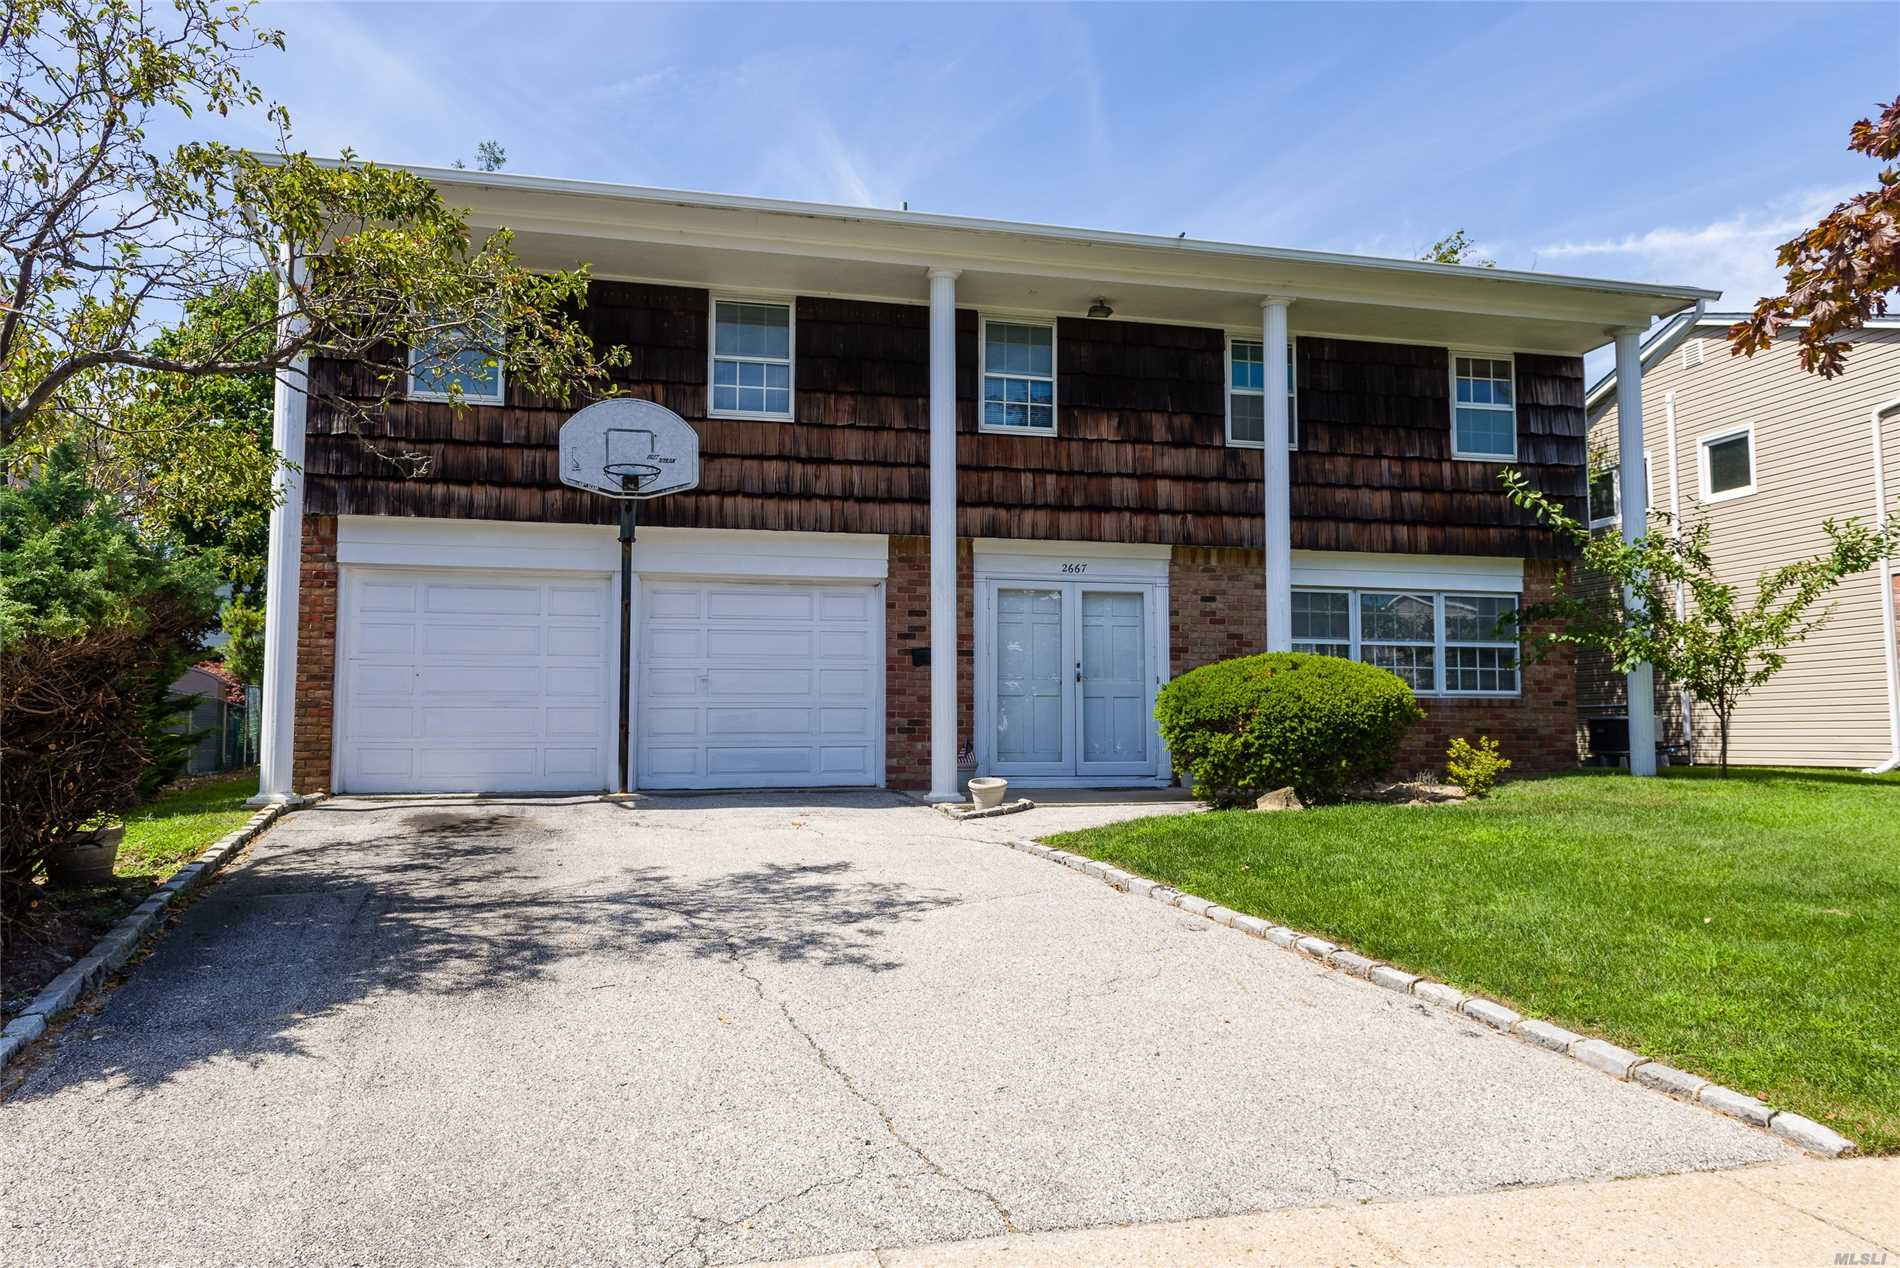 Cameo Model Splanch Deep South On Most Desirable Location Of East Bay Peninsula. This Home Has Hi-Hats. Hardwood Flrs.Upgraded Electric. Replaced Roof.. Amazing Floor Plan. Oversized Rms. Priced To Sell! Too Good To Last!!! Located In Award Winning Kennedy High School District. Homeowner Is Currently Paying For Flood Zone X. Taxes After Star $14, 875.90